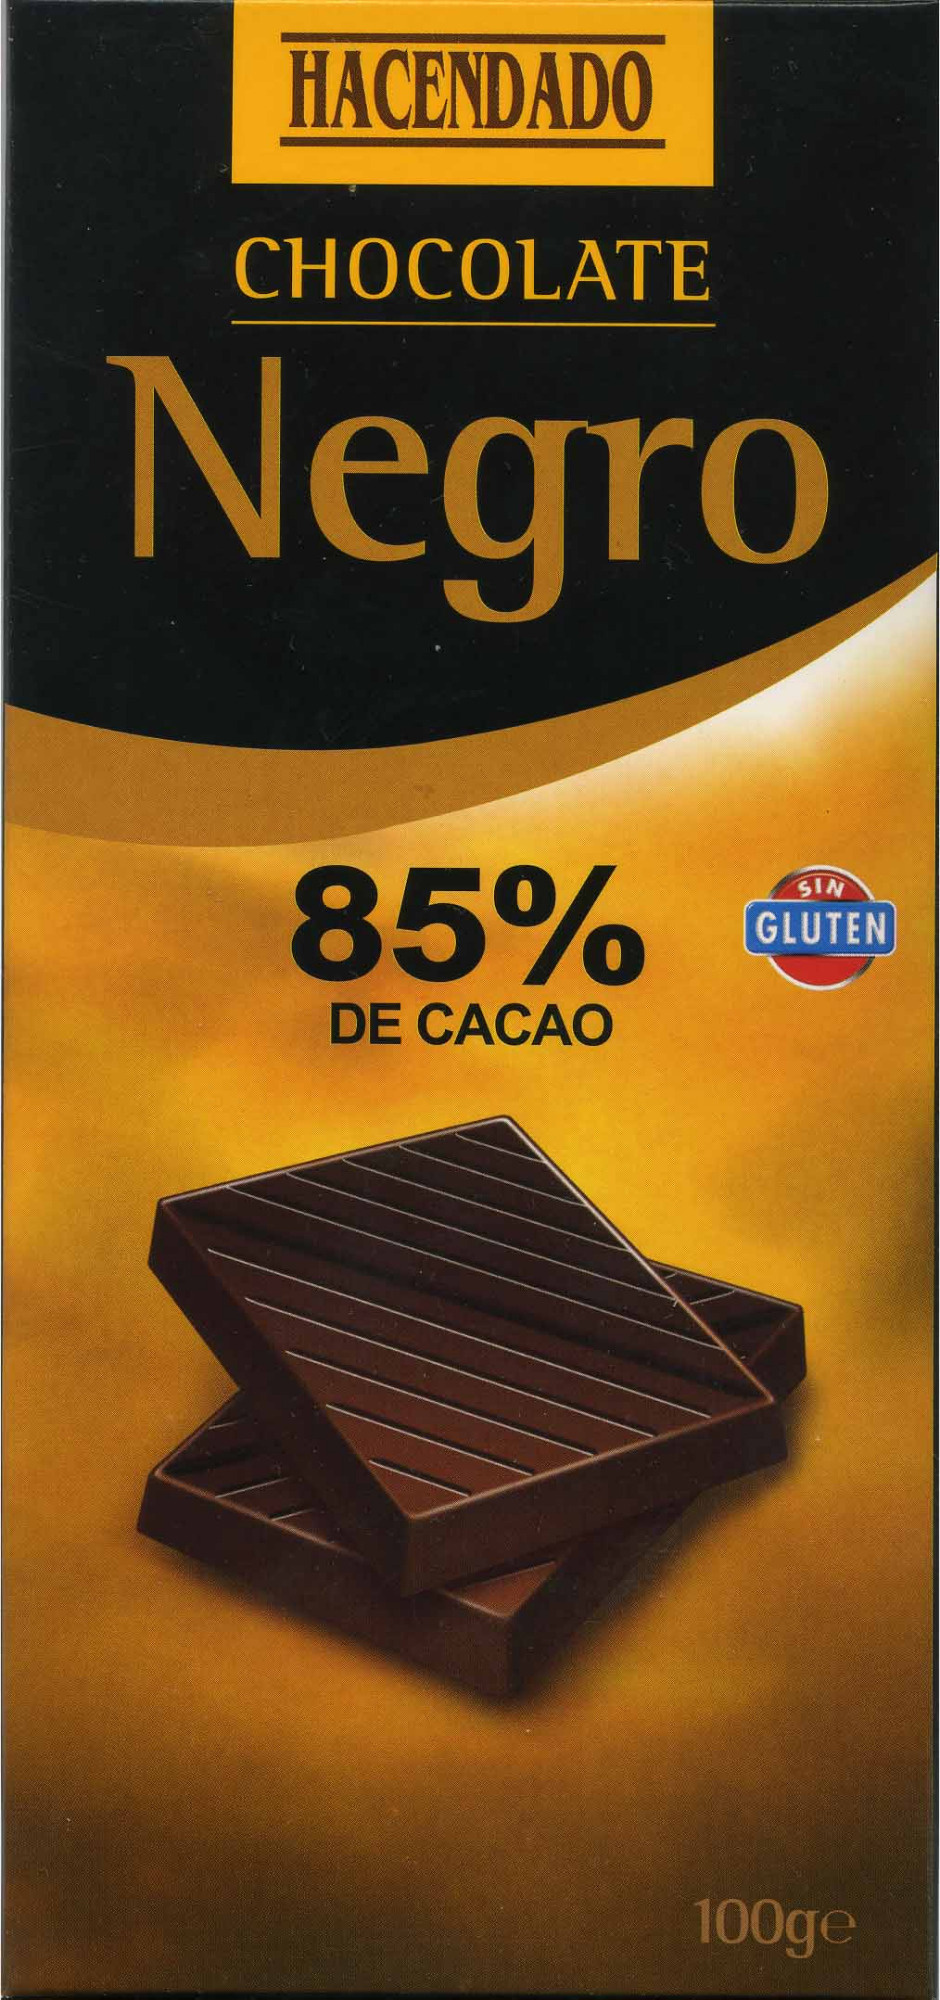 Chocolate negro 85% cacao - Product - es